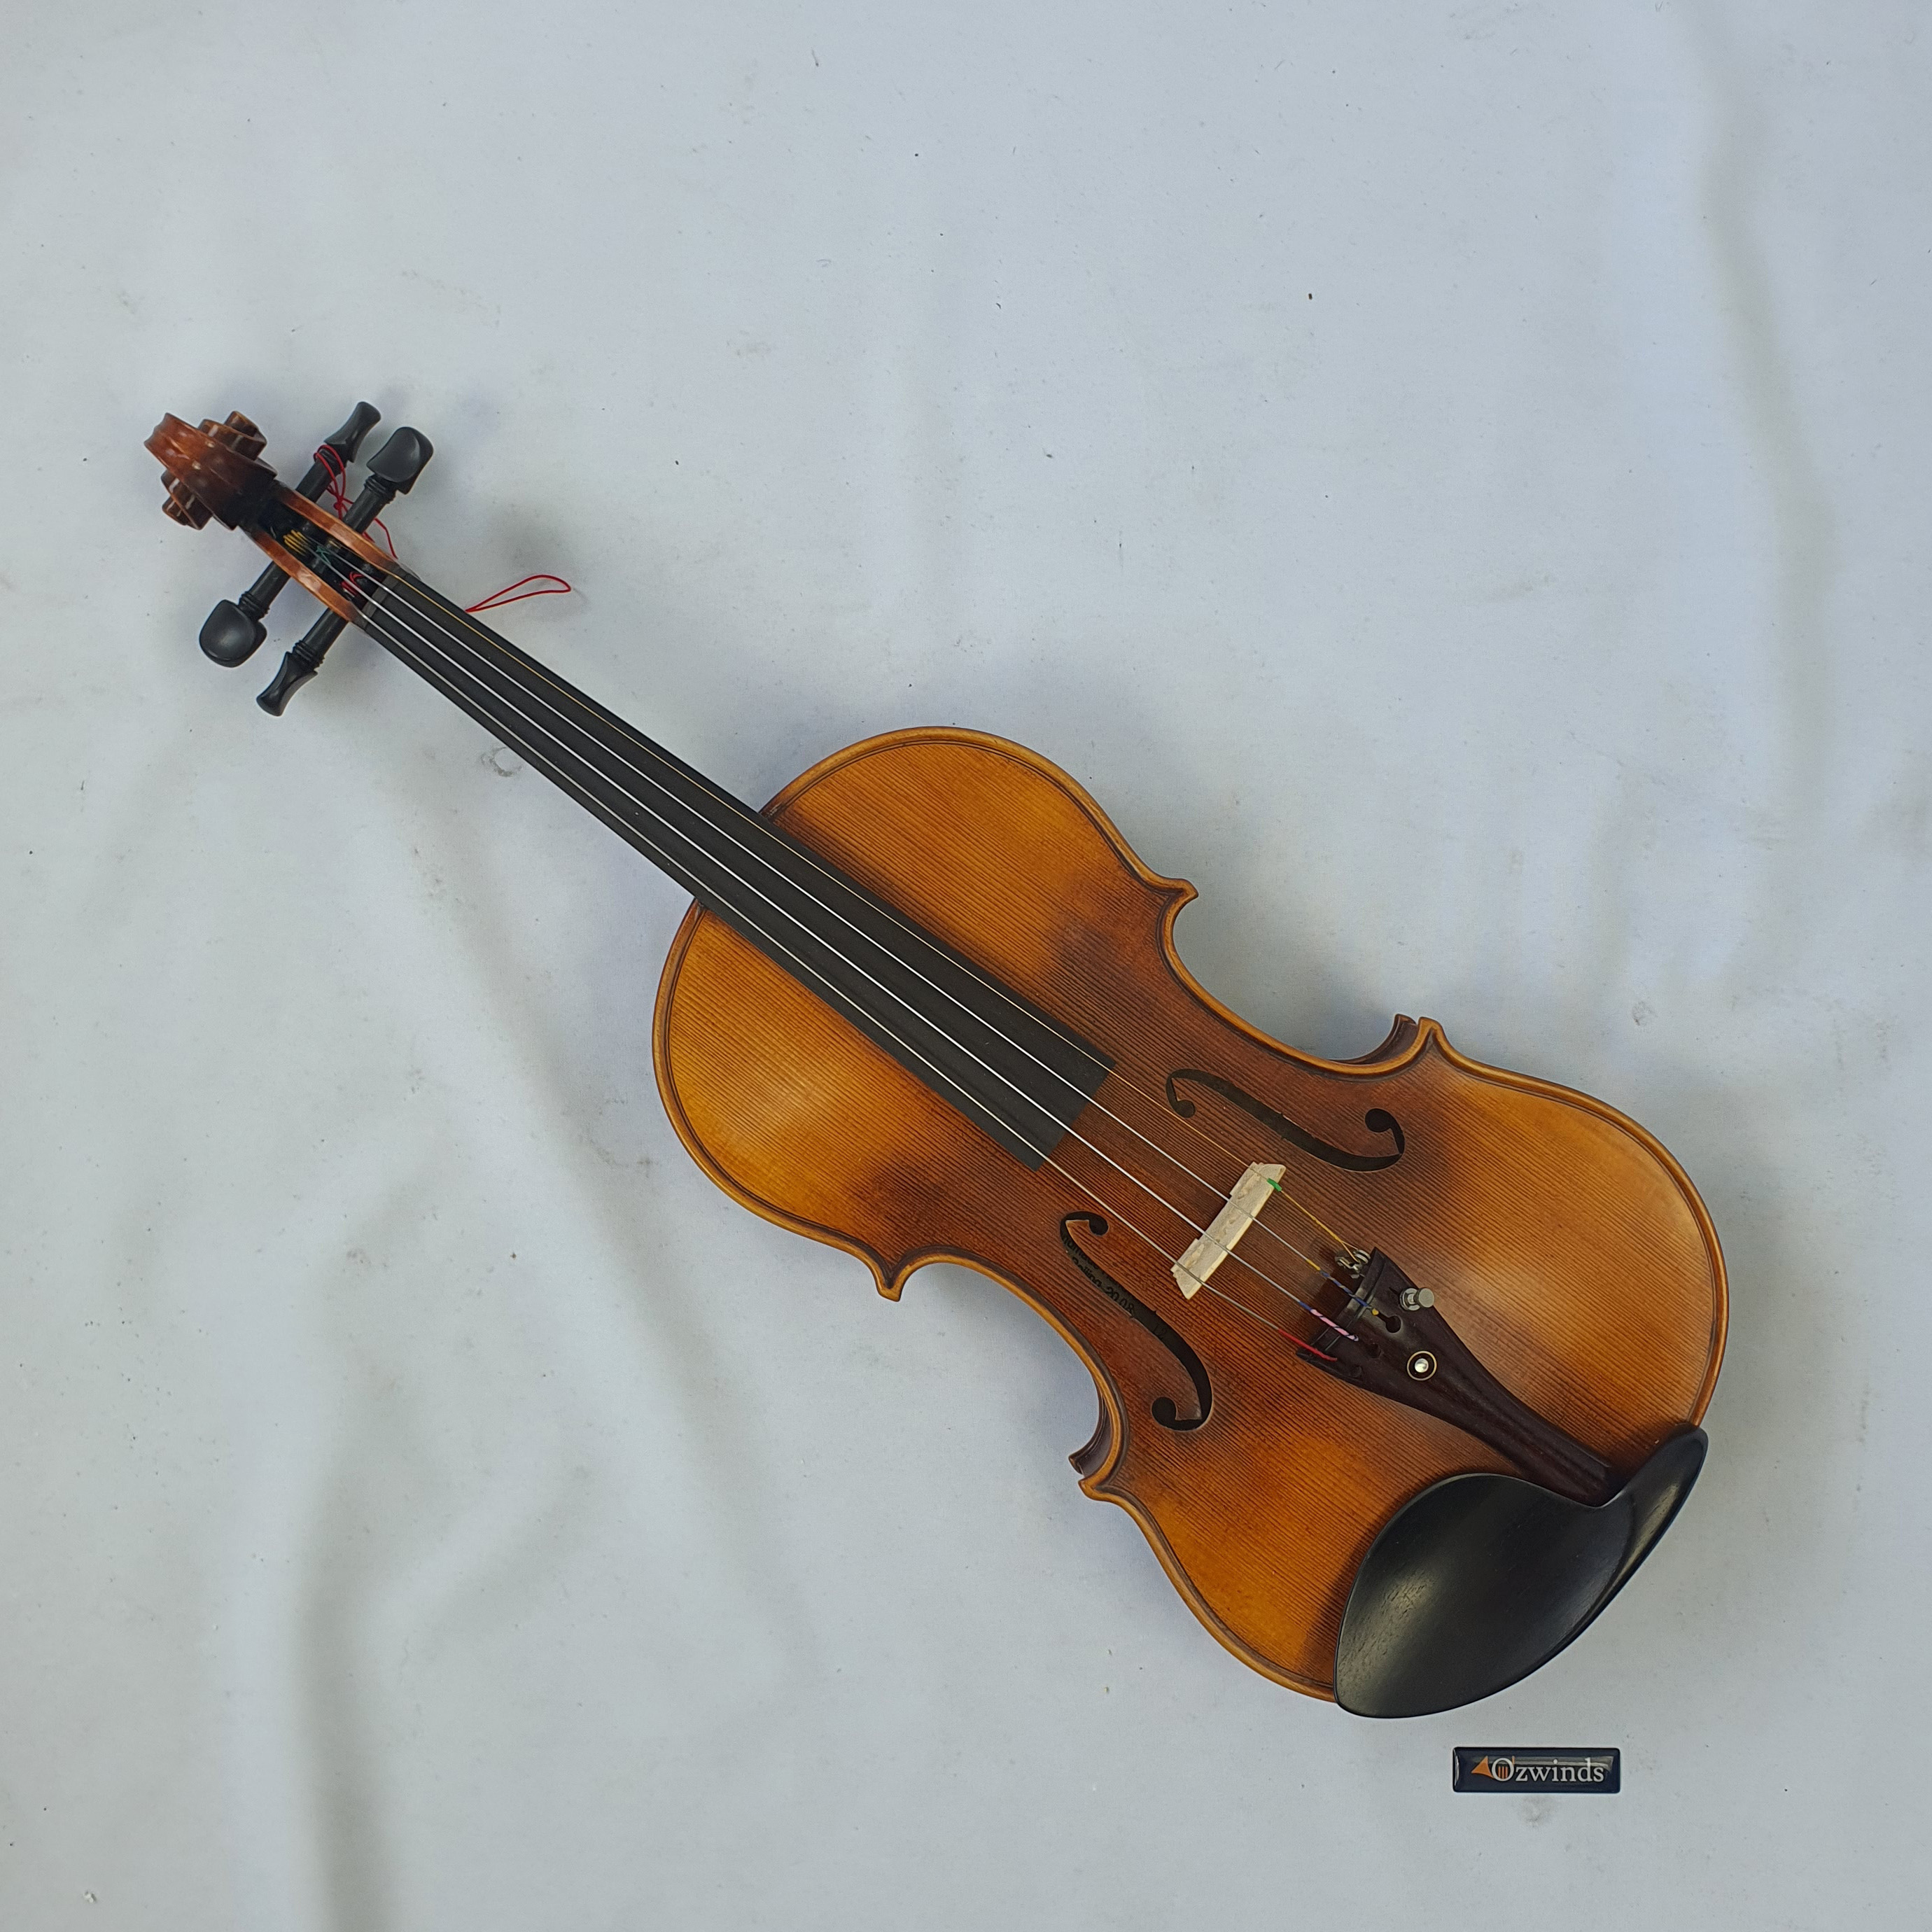 Kaiming Viola 12 inch - Includes case - Used